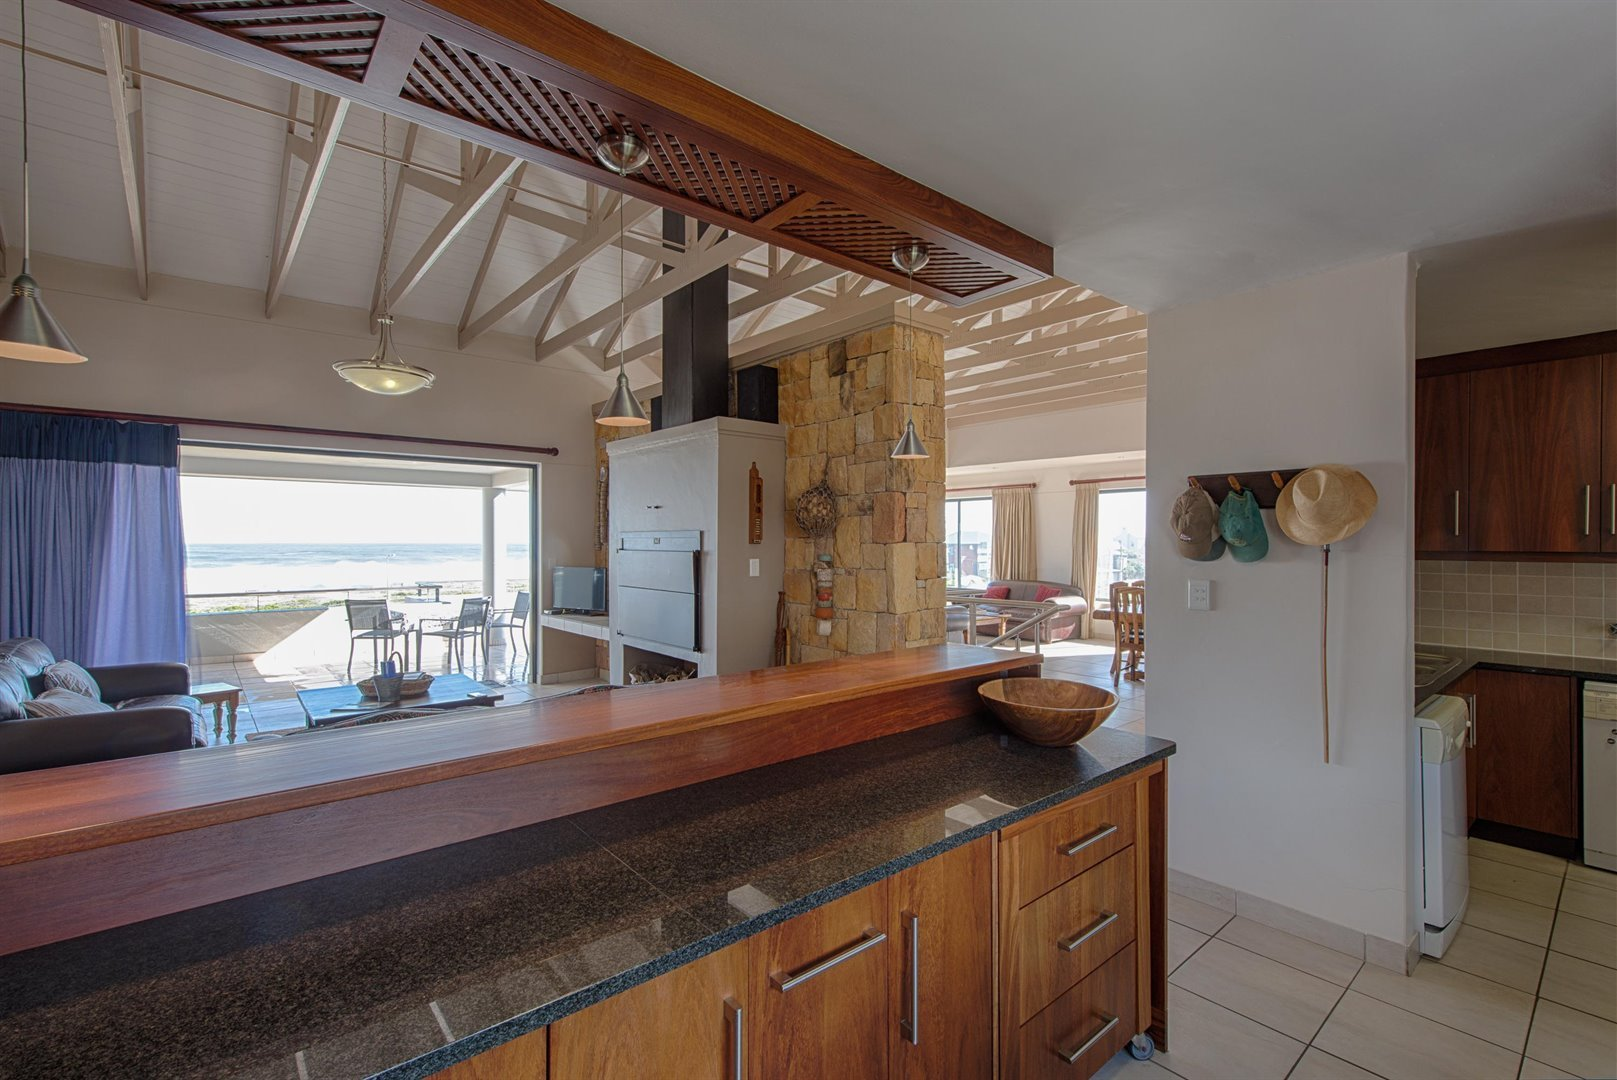 Yzerfontein property for sale. Ref No: 13373287. Picture no 42